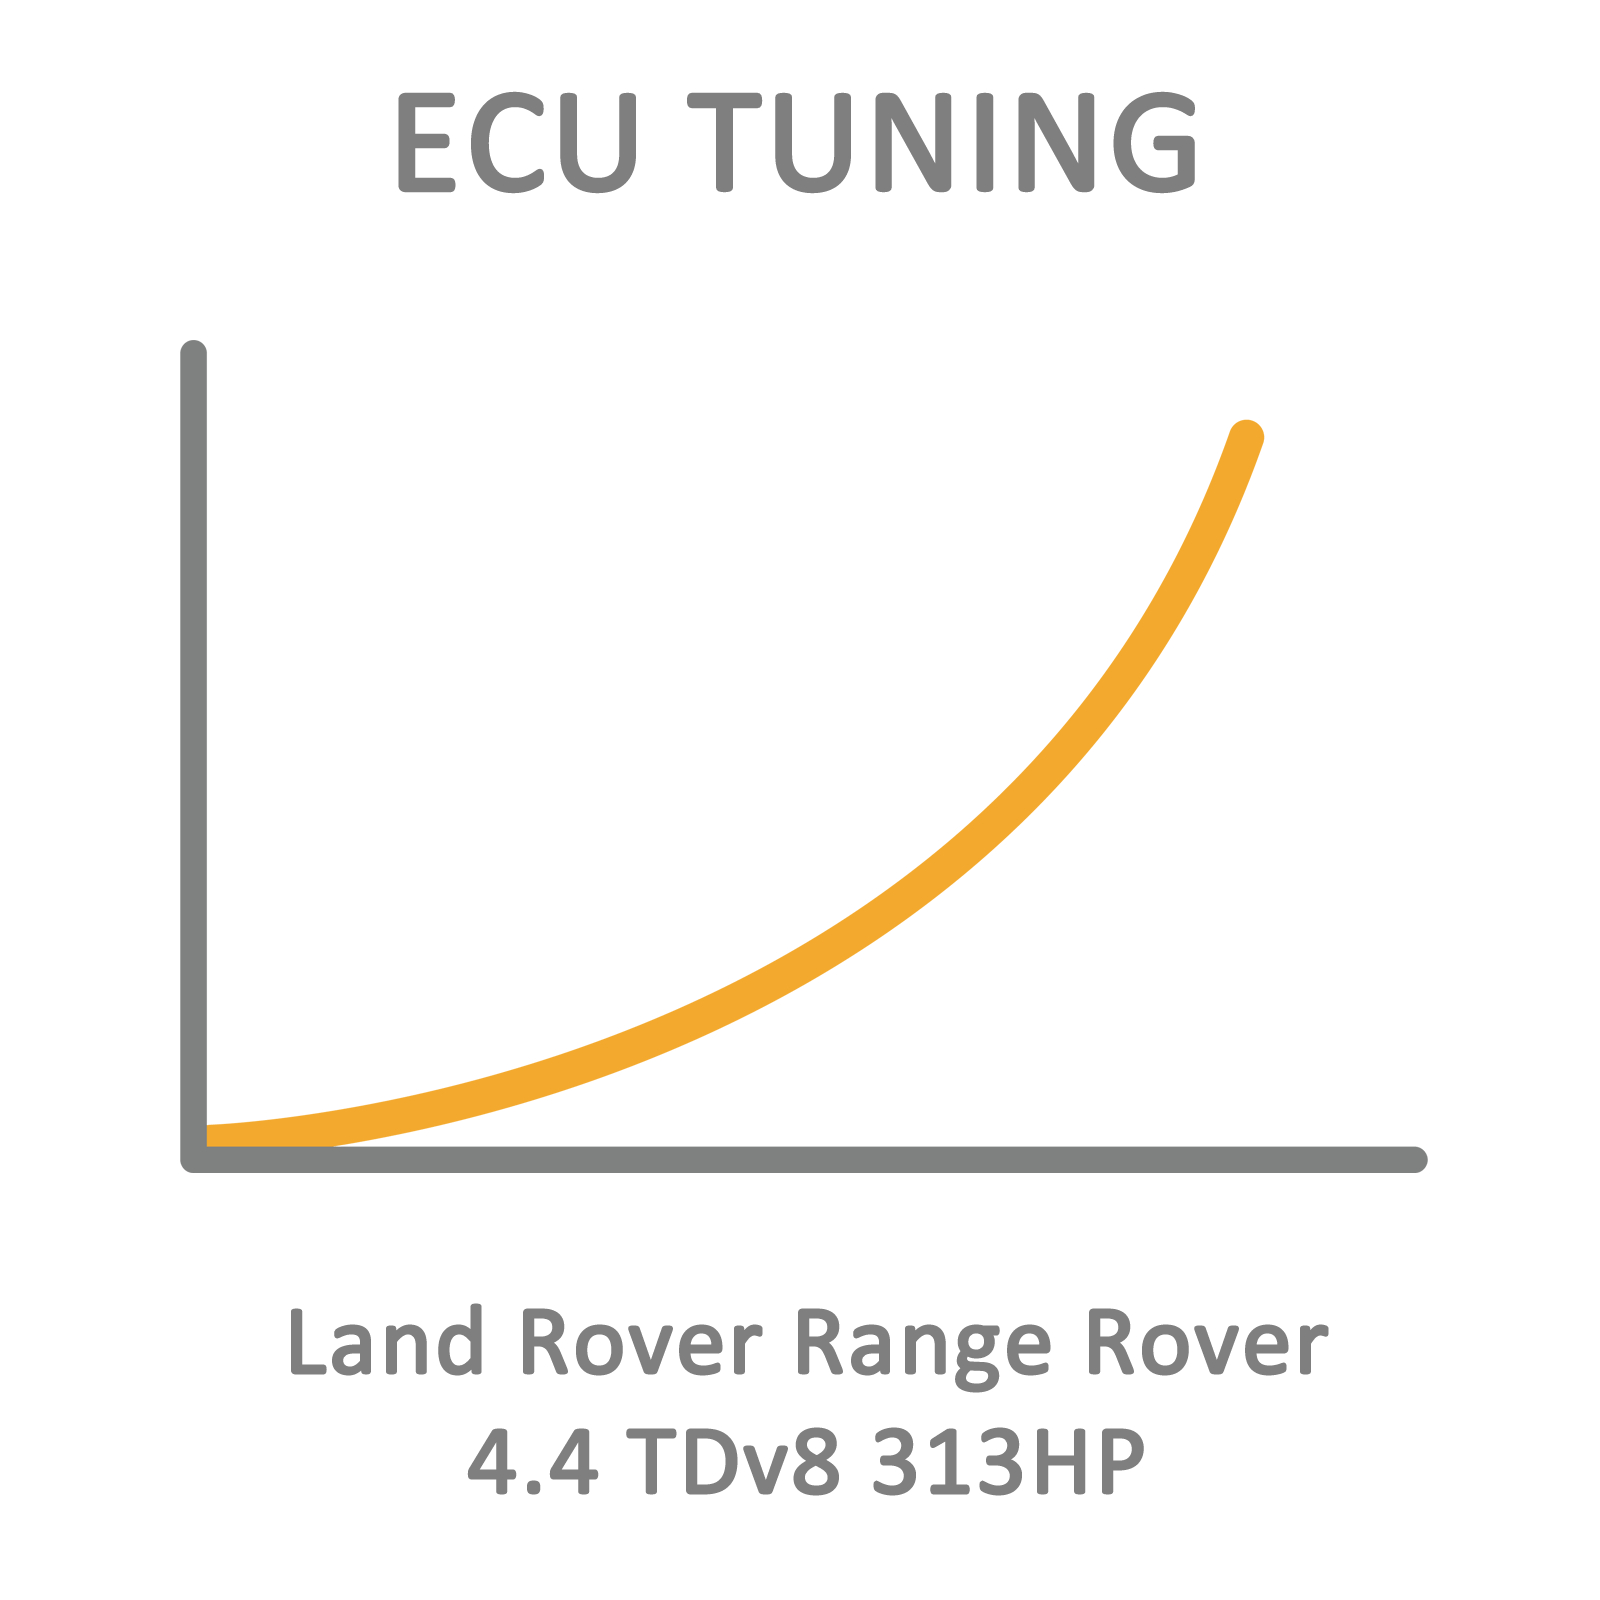 Land Rover Range Rover 4.4 TDv8 313HP ECU Tuning Remapping